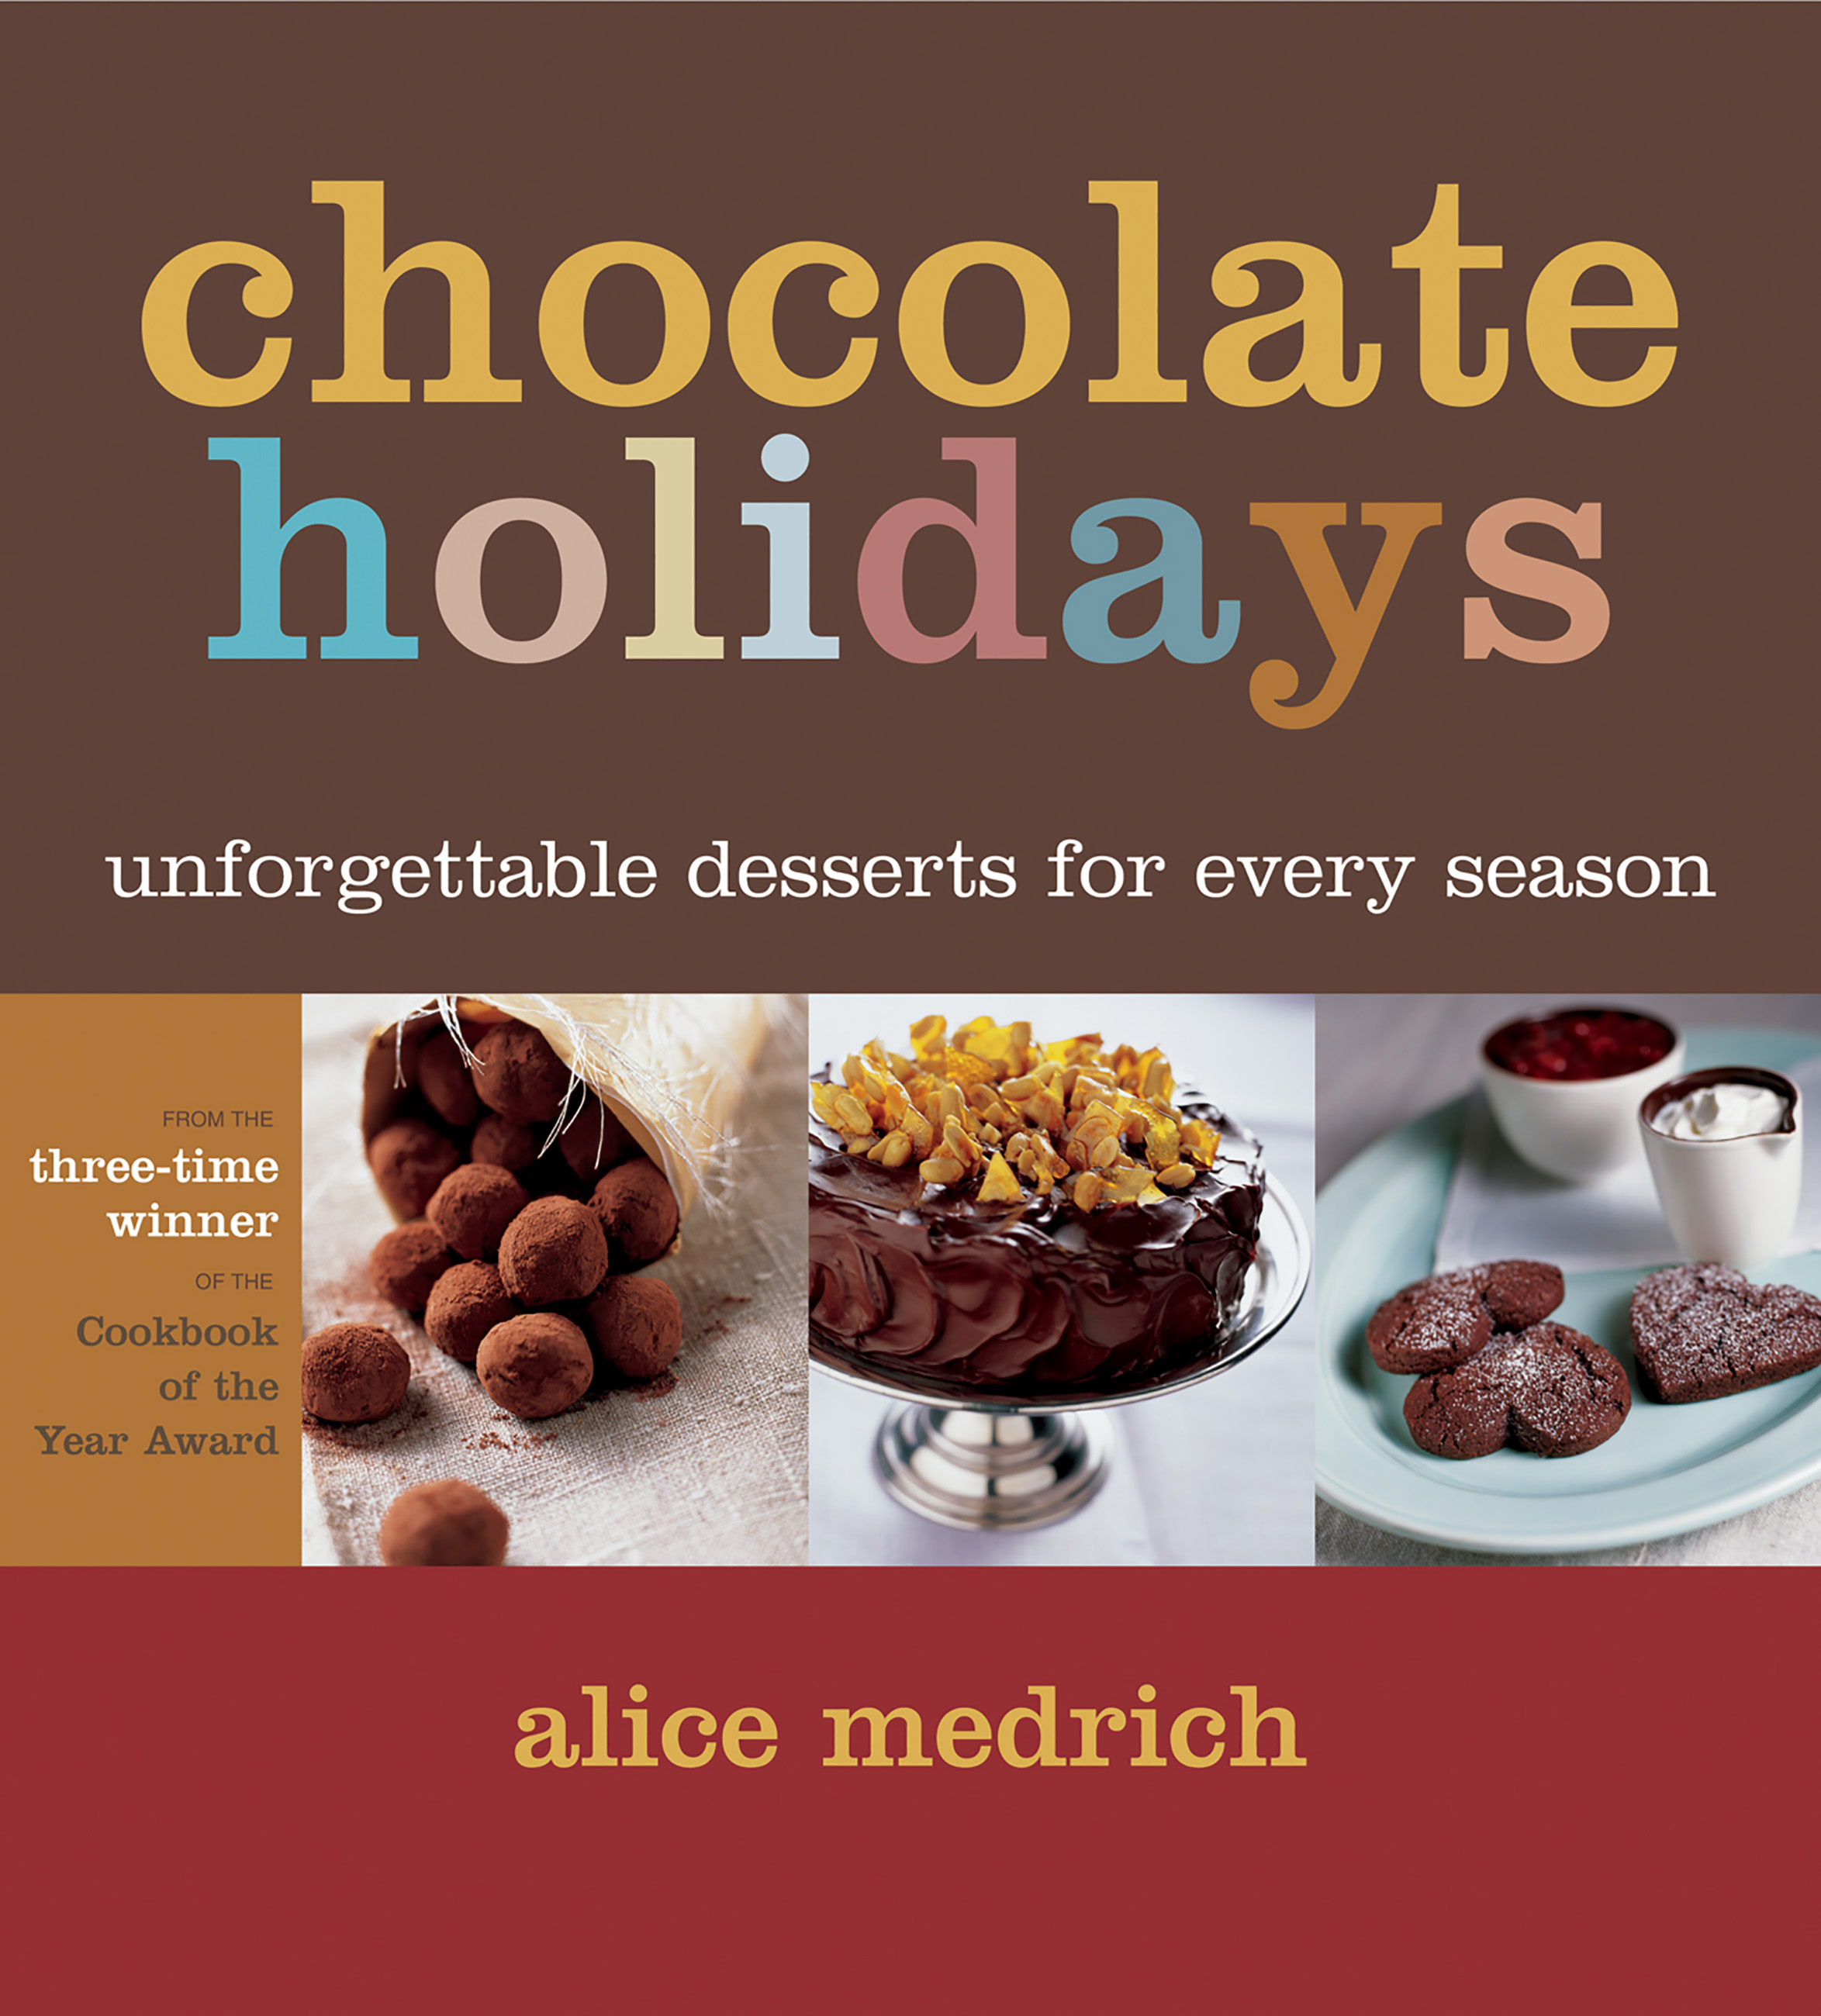 Chocolate Holidays Unforgettable Desserts for Every Season